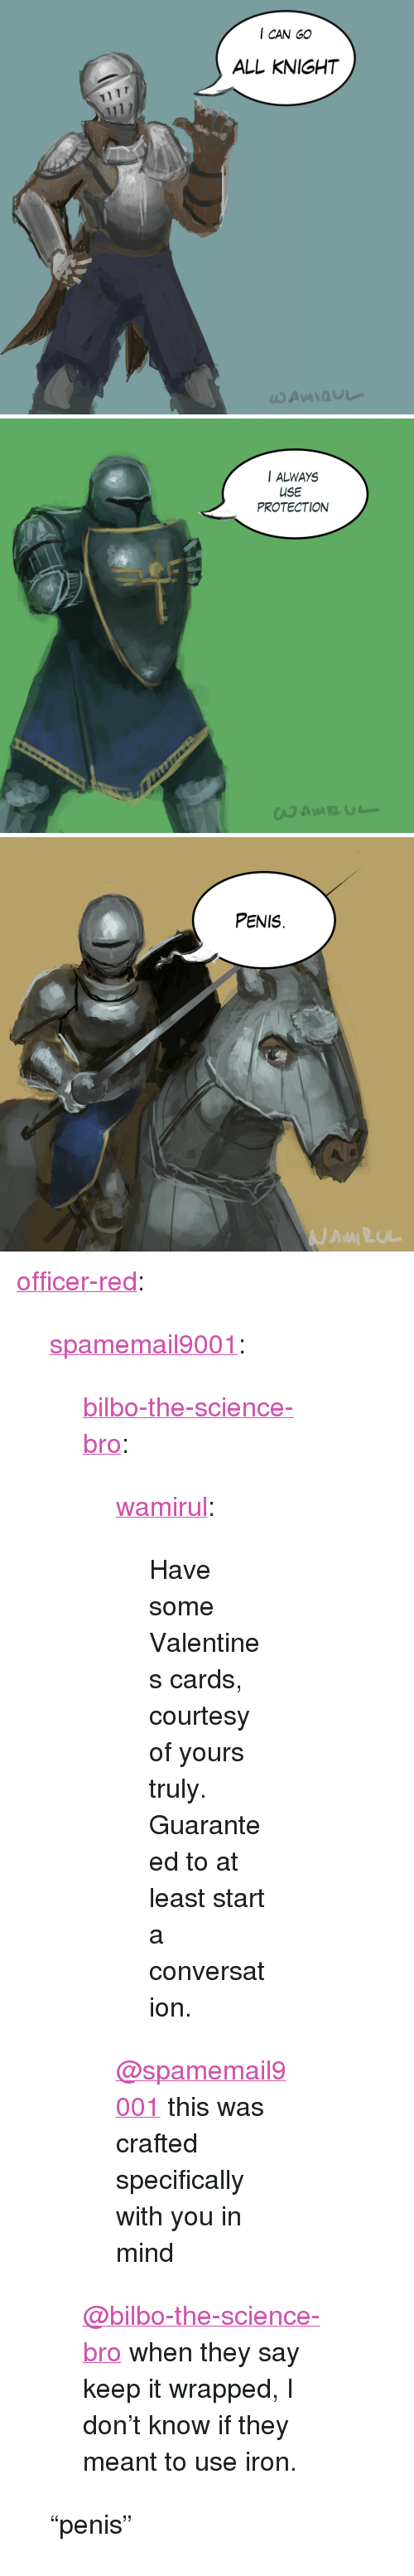 """yours truly: I CAN GO  ALL KNIGHT   I ALWAYS  USE  PROTECTION   PENIS <p><a href=""""https://officer-red.tumblr.com/post/166266227720/spamemail9001-bilbo-the-science-bro"""" class=""""tumblr_blog"""" target=""""_blank"""">officer-red</a>:</p><blockquote> <p><a href=""""https://spamemail9001.tumblr.com/post/166260275882/bilbo-the-science-bro-wamirul-have-some"""" class=""""tumblr_blog"""" target=""""_blank"""">spamemail9001</a>:</p> <blockquote> <p><a href=""""http://bilbo-the-science-bro.tumblr.com/post/166174228042/wamirul-have-some-valentines-cards-courtesy-of"""" class=""""tumblr_blog"""" target=""""_blank"""">bilbo-the-science-bro</a>:</p> <blockquote> <p><a href=""""http://wamirul.tumblr.com/post/157188930152/have-some-valentines-cards-courtesy-of-yours"""" class=""""tumblr_blog"""" target=""""_blank"""">wamirul</a>:</p> <blockquote><p>Have some Valentines cards, courtesy of yours truly. Guaranteed to at least start a conversation. <br/></p></blockquote>  <p><a class=""""tumblelog"""" href=""""https://tmblr.co/mGWZixgq6pe9485rxIv3B6Q"""" target=""""_blank"""">@spamemail9001</a> this was crafted specifically with you in mind </p> </blockquote> <p><a class=""""tumblelog"""" href=""""https://tmblr.co/mjR7s_25t5pR_RuJzeBBqEw"""" target=""""_blank"""">@bilbo-the-science-bro</a> when they say keep it wrapped, I don't know if they meant to use iron.</p> </blockquote> <p>""""penis""""<br/></p> </blockquote>"""